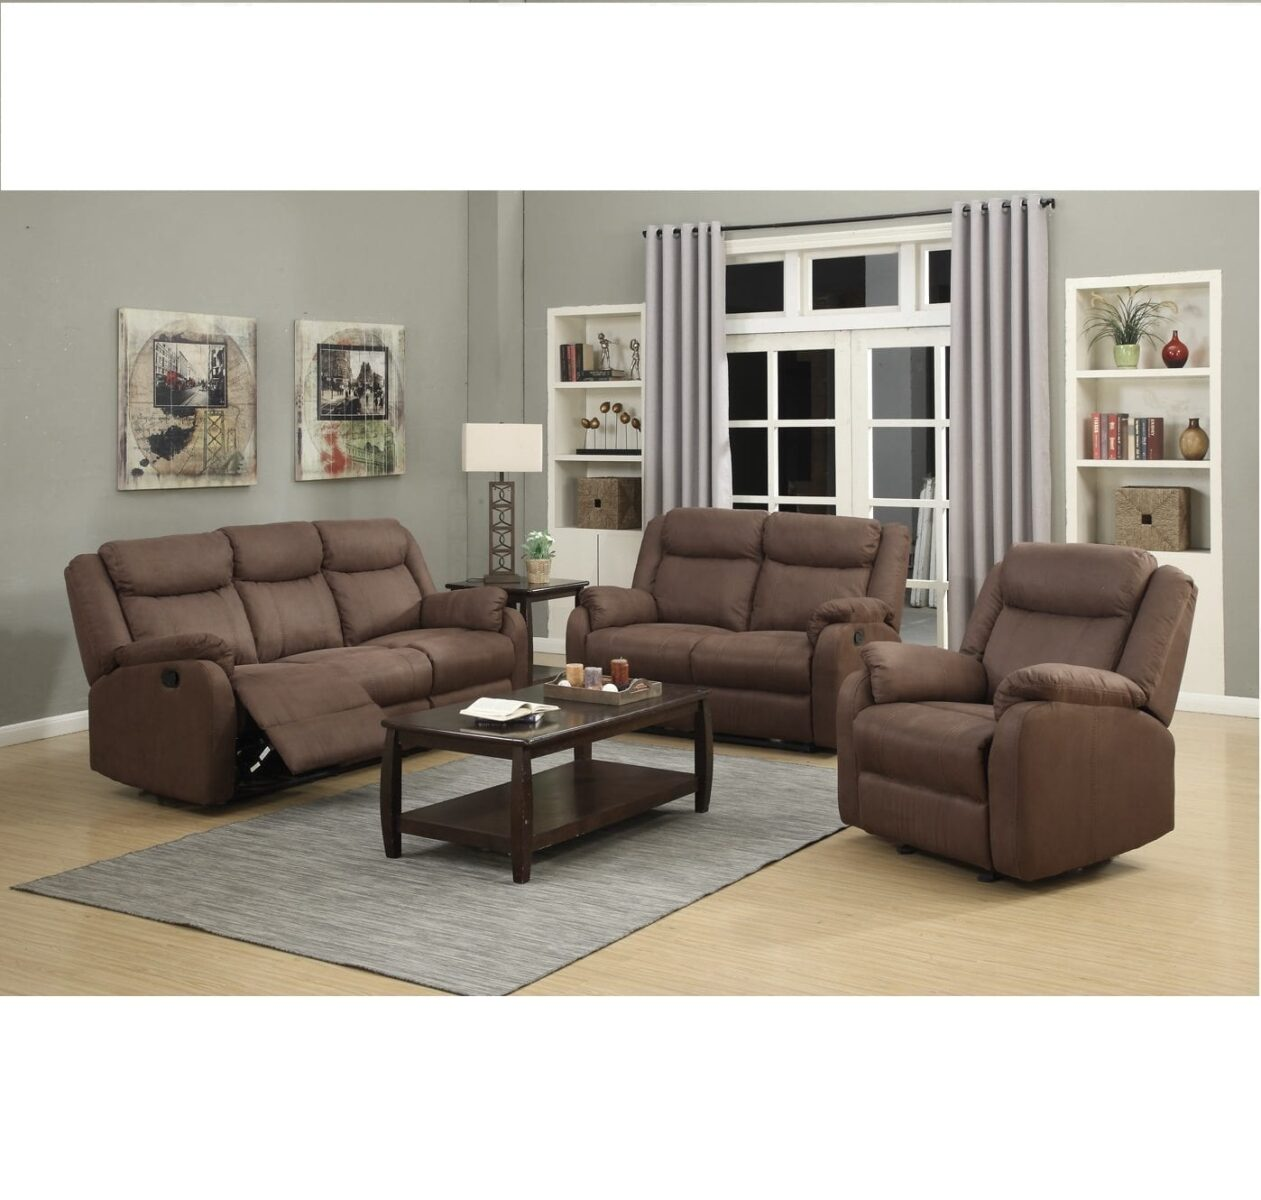 2 Seater Recliner Lounge Leeds Lounge 3 Seater Plus 2 Single Recliners One Stop Pine